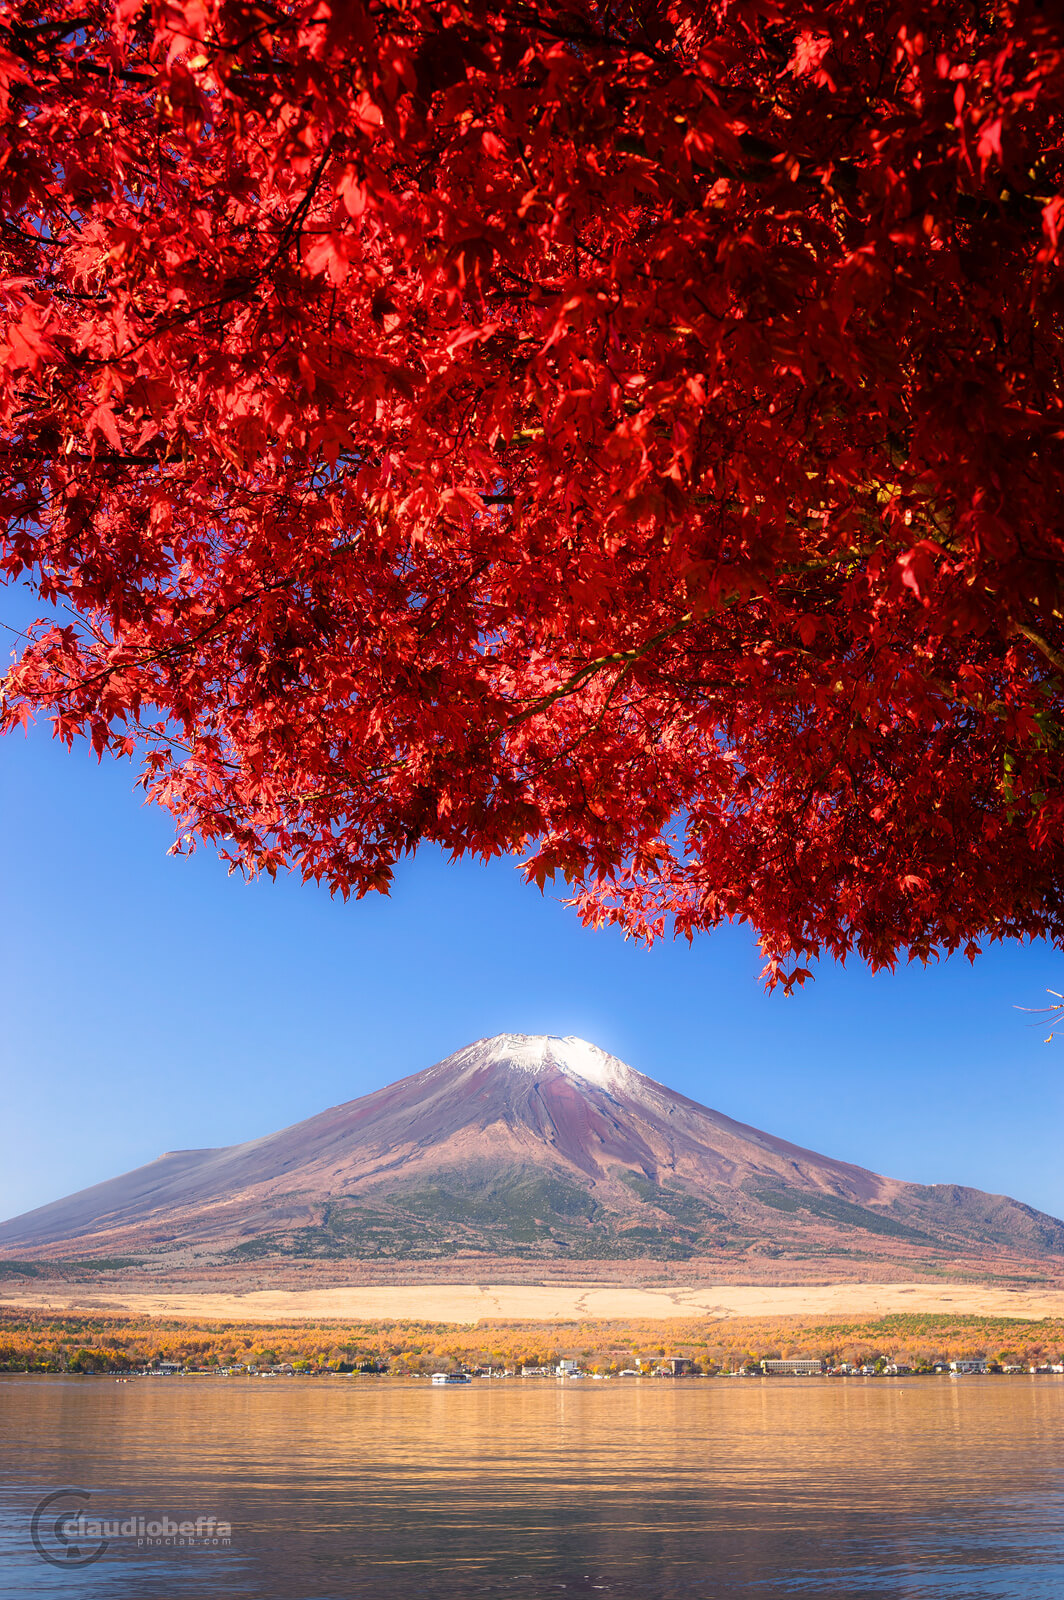 Mount Fuji, Fuji, Japan, Chubu, autumn, fall, momiji, lake, Yamanakako, red, red cloud, travel, phoclab